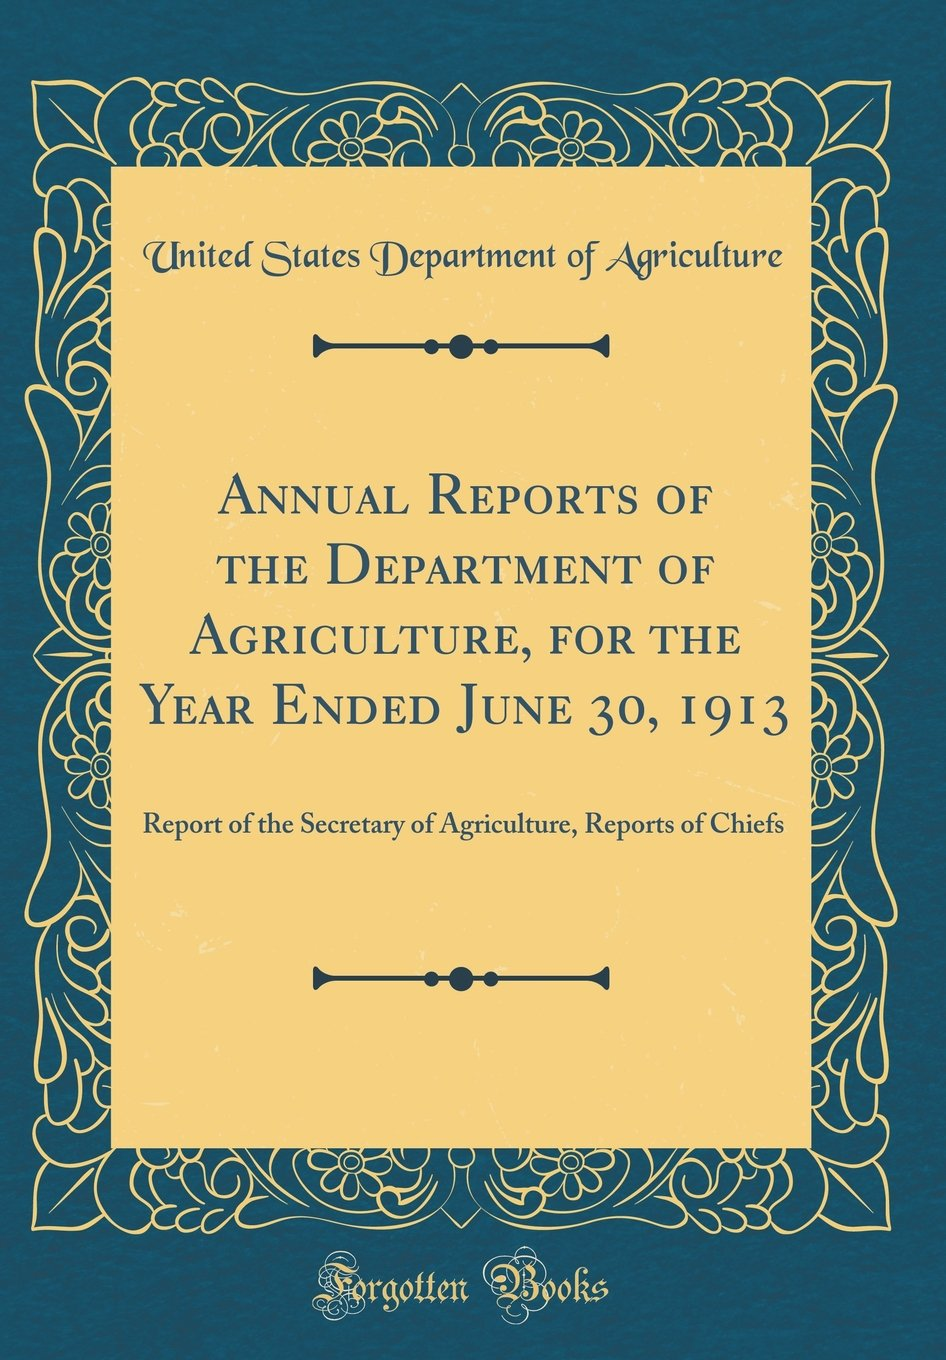 Annual Reports of the Department of Agriculture, for the Year Ended June 30, 1913: Report of the Secretary of Agriculture, Reports of Chiefs (Classic Reprint) pdf epub